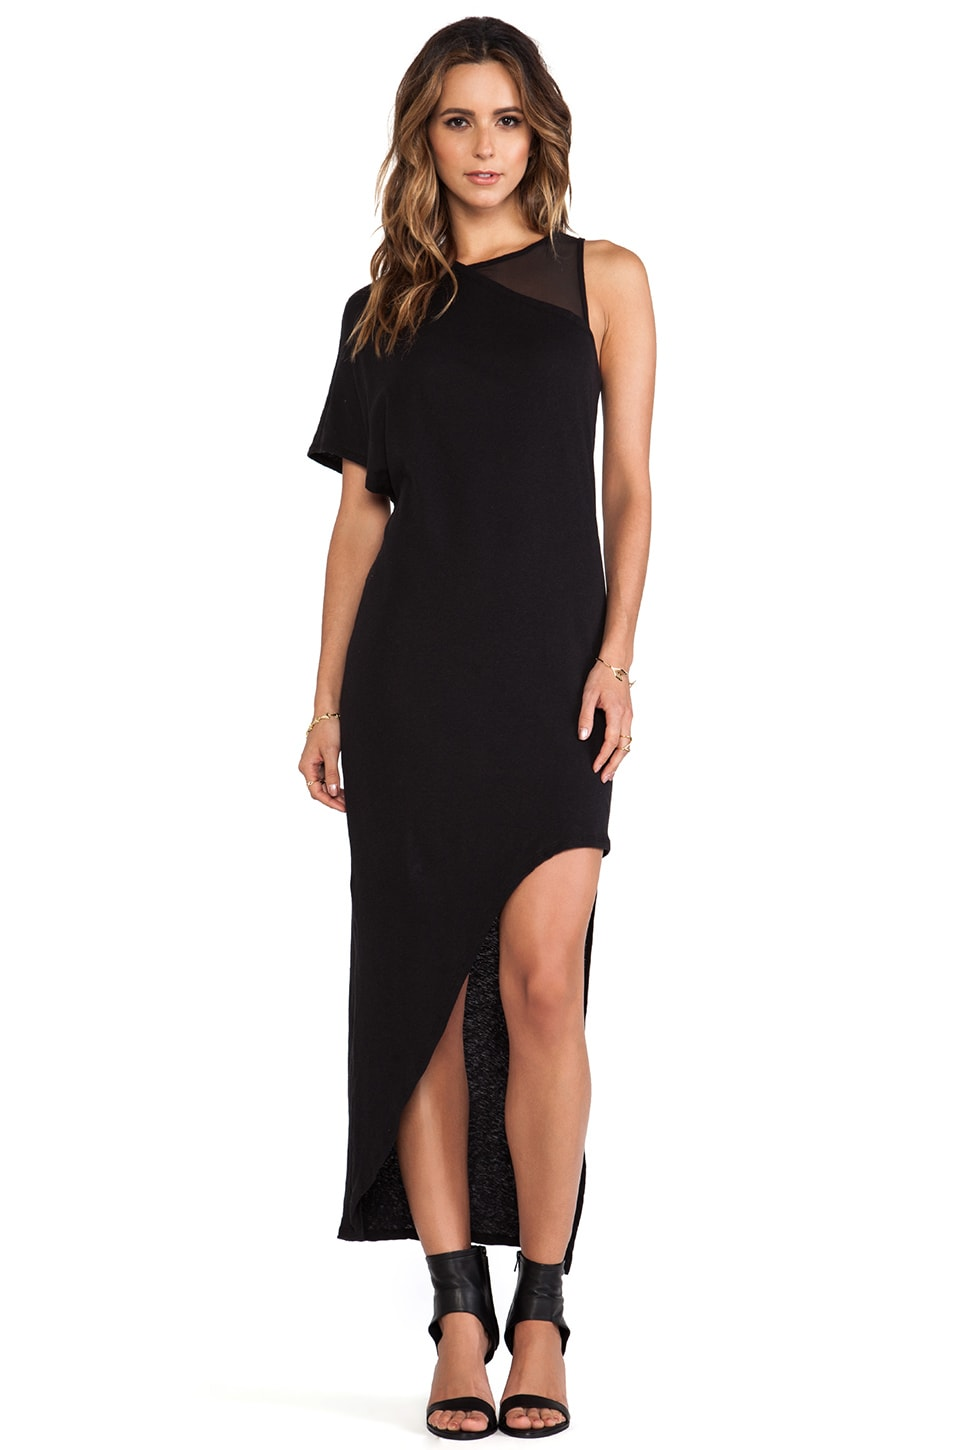 OAK Hidden Tank Dress in Black